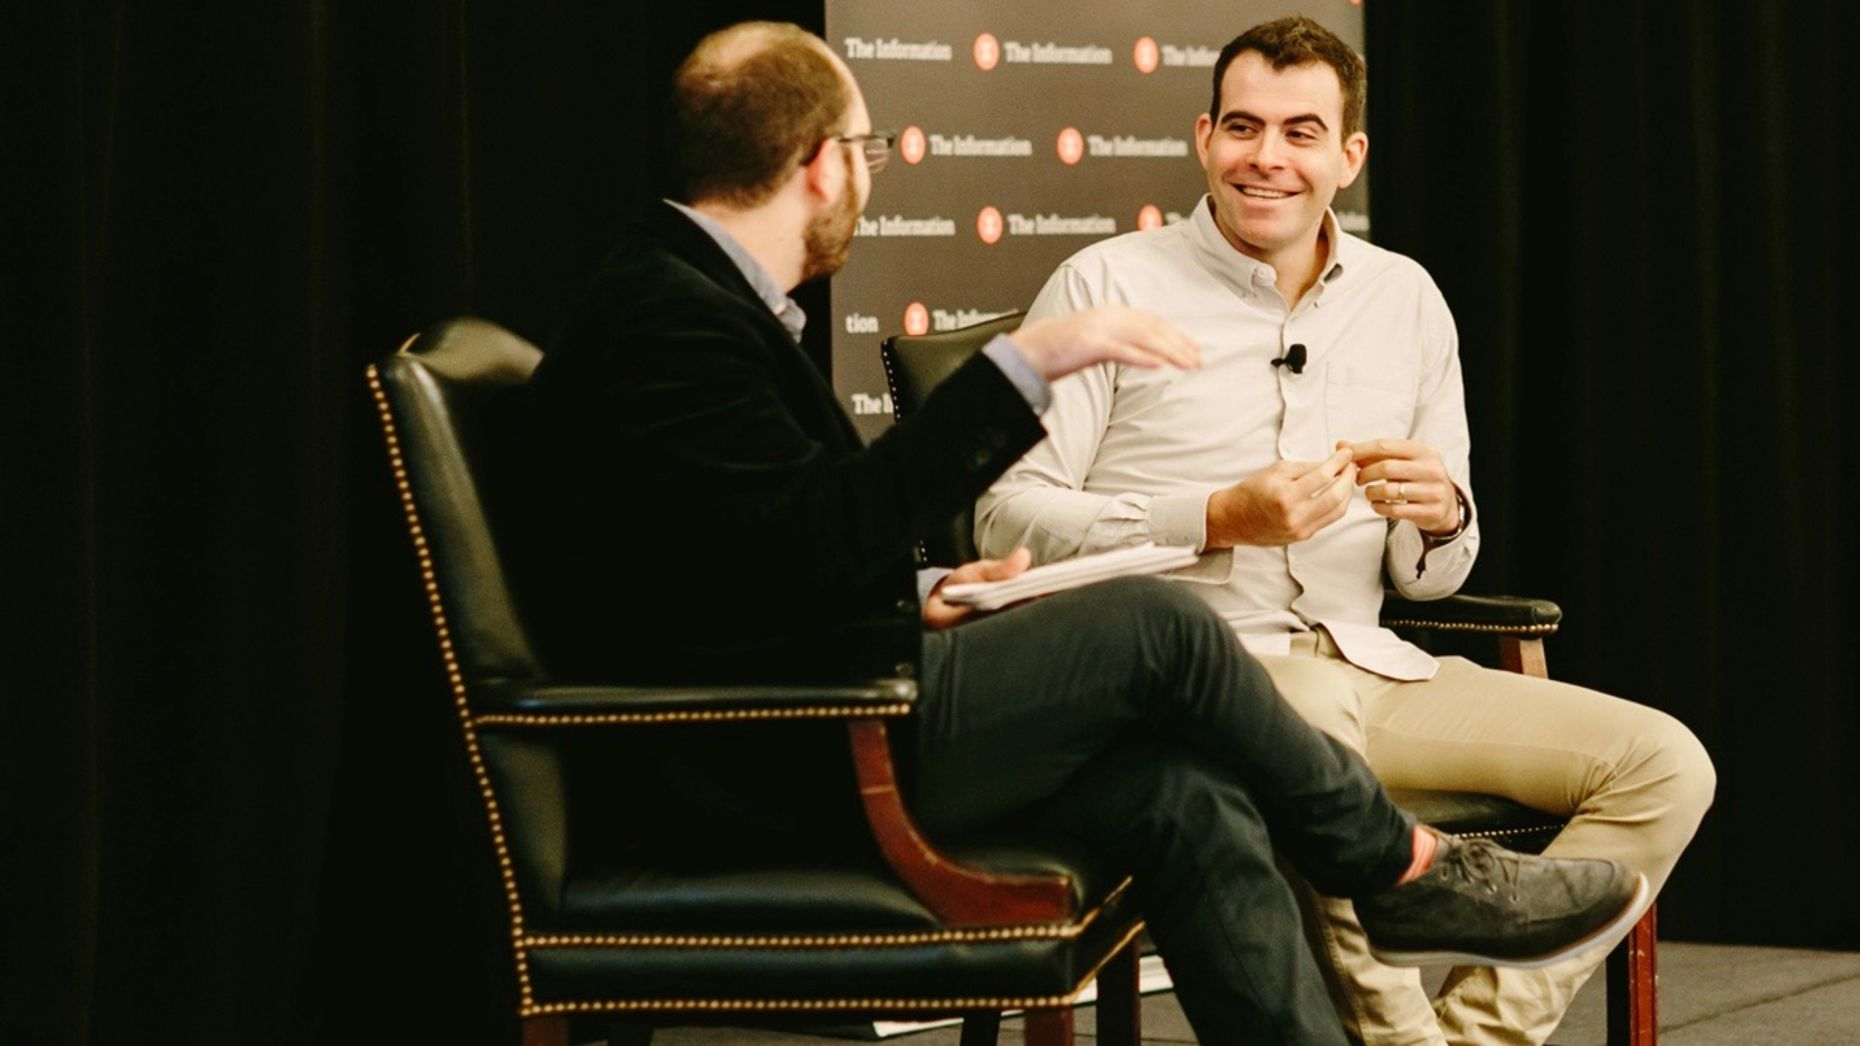 Facebook's VP of News Feed Adam Mosseri talking with The Information's Cory Weinberg on Tuesday. Photo by Karen Obrist